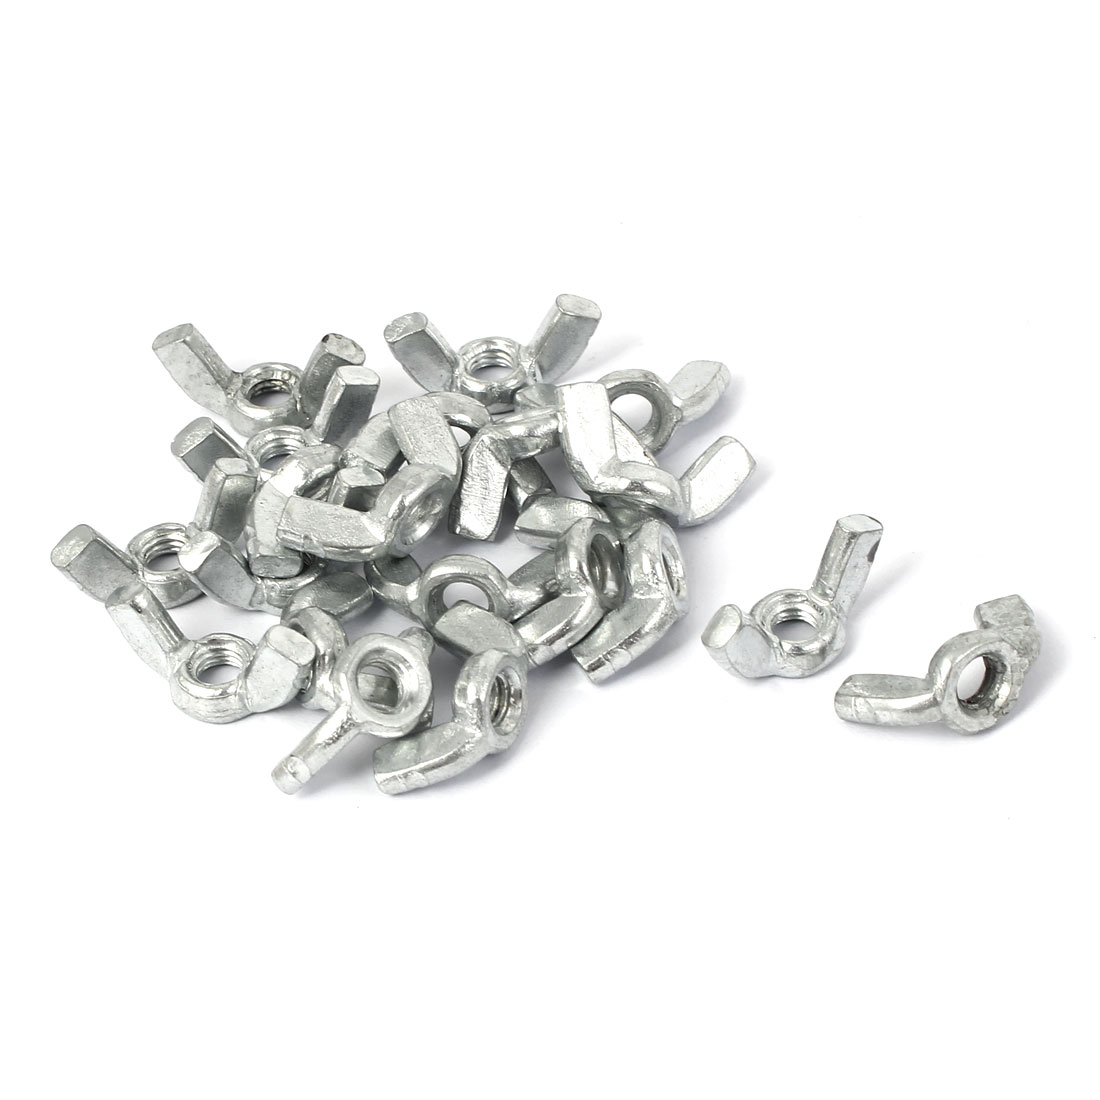 M5 Metal Female Thread Wing Nut Hardware Fasteners Silver Tone 20pcs